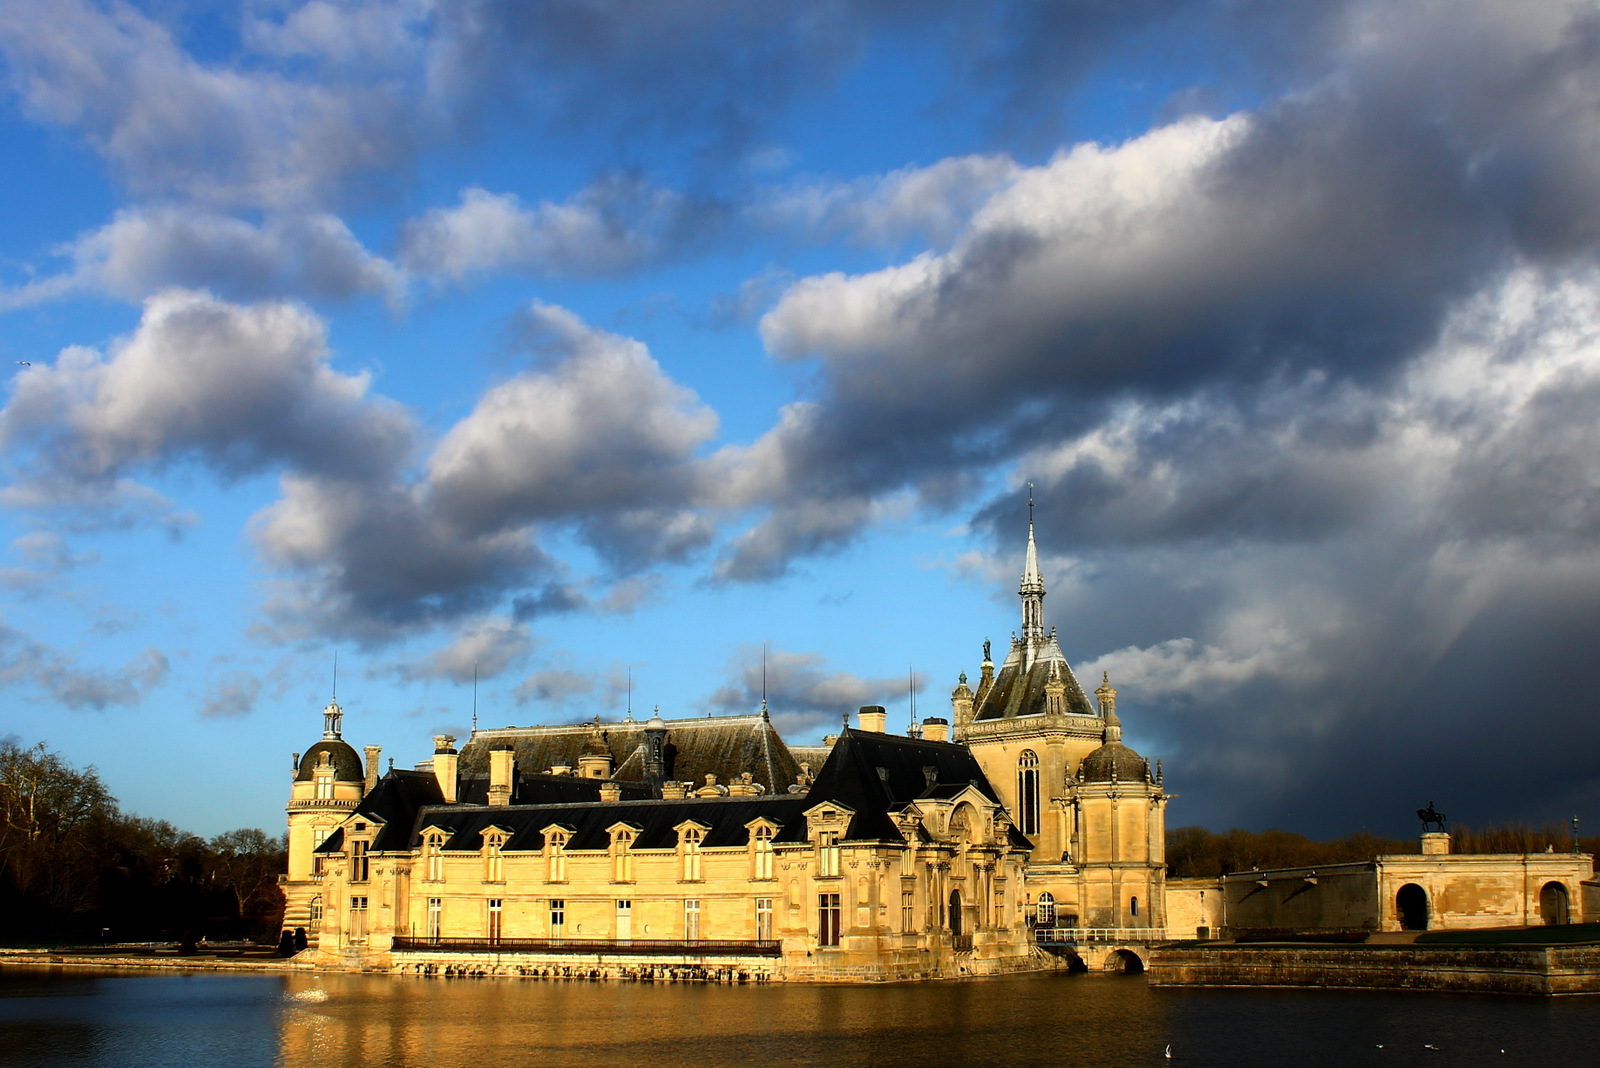 Chantillies_castle_france_Château_de_Chantilly_замок_Шантийи_Франция